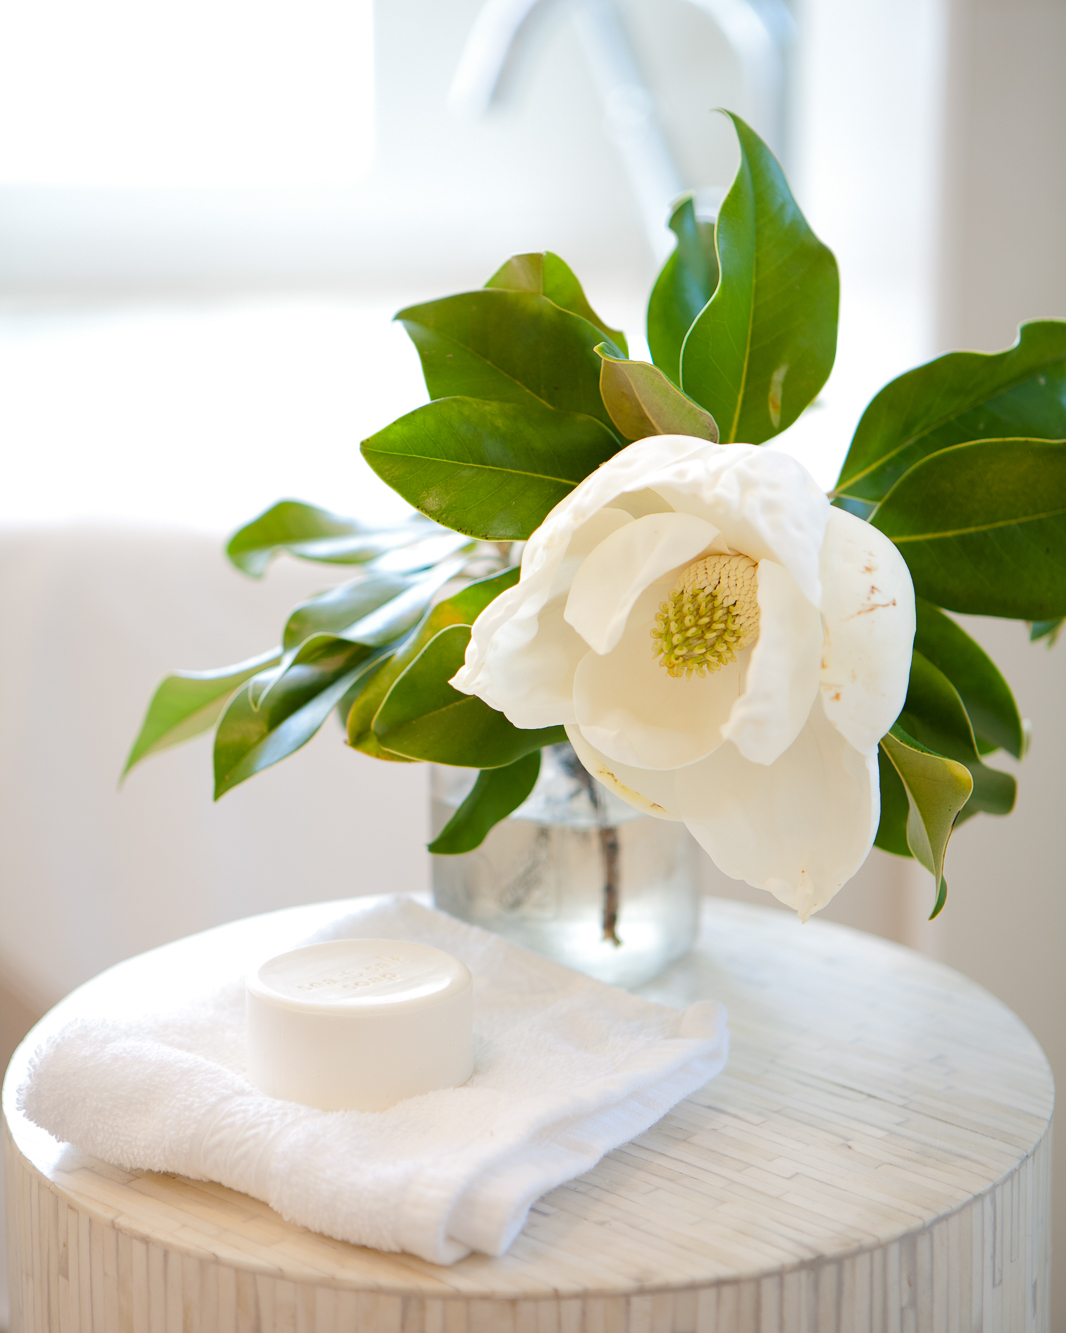 Magnolia blossom in a clear vase on a small table next